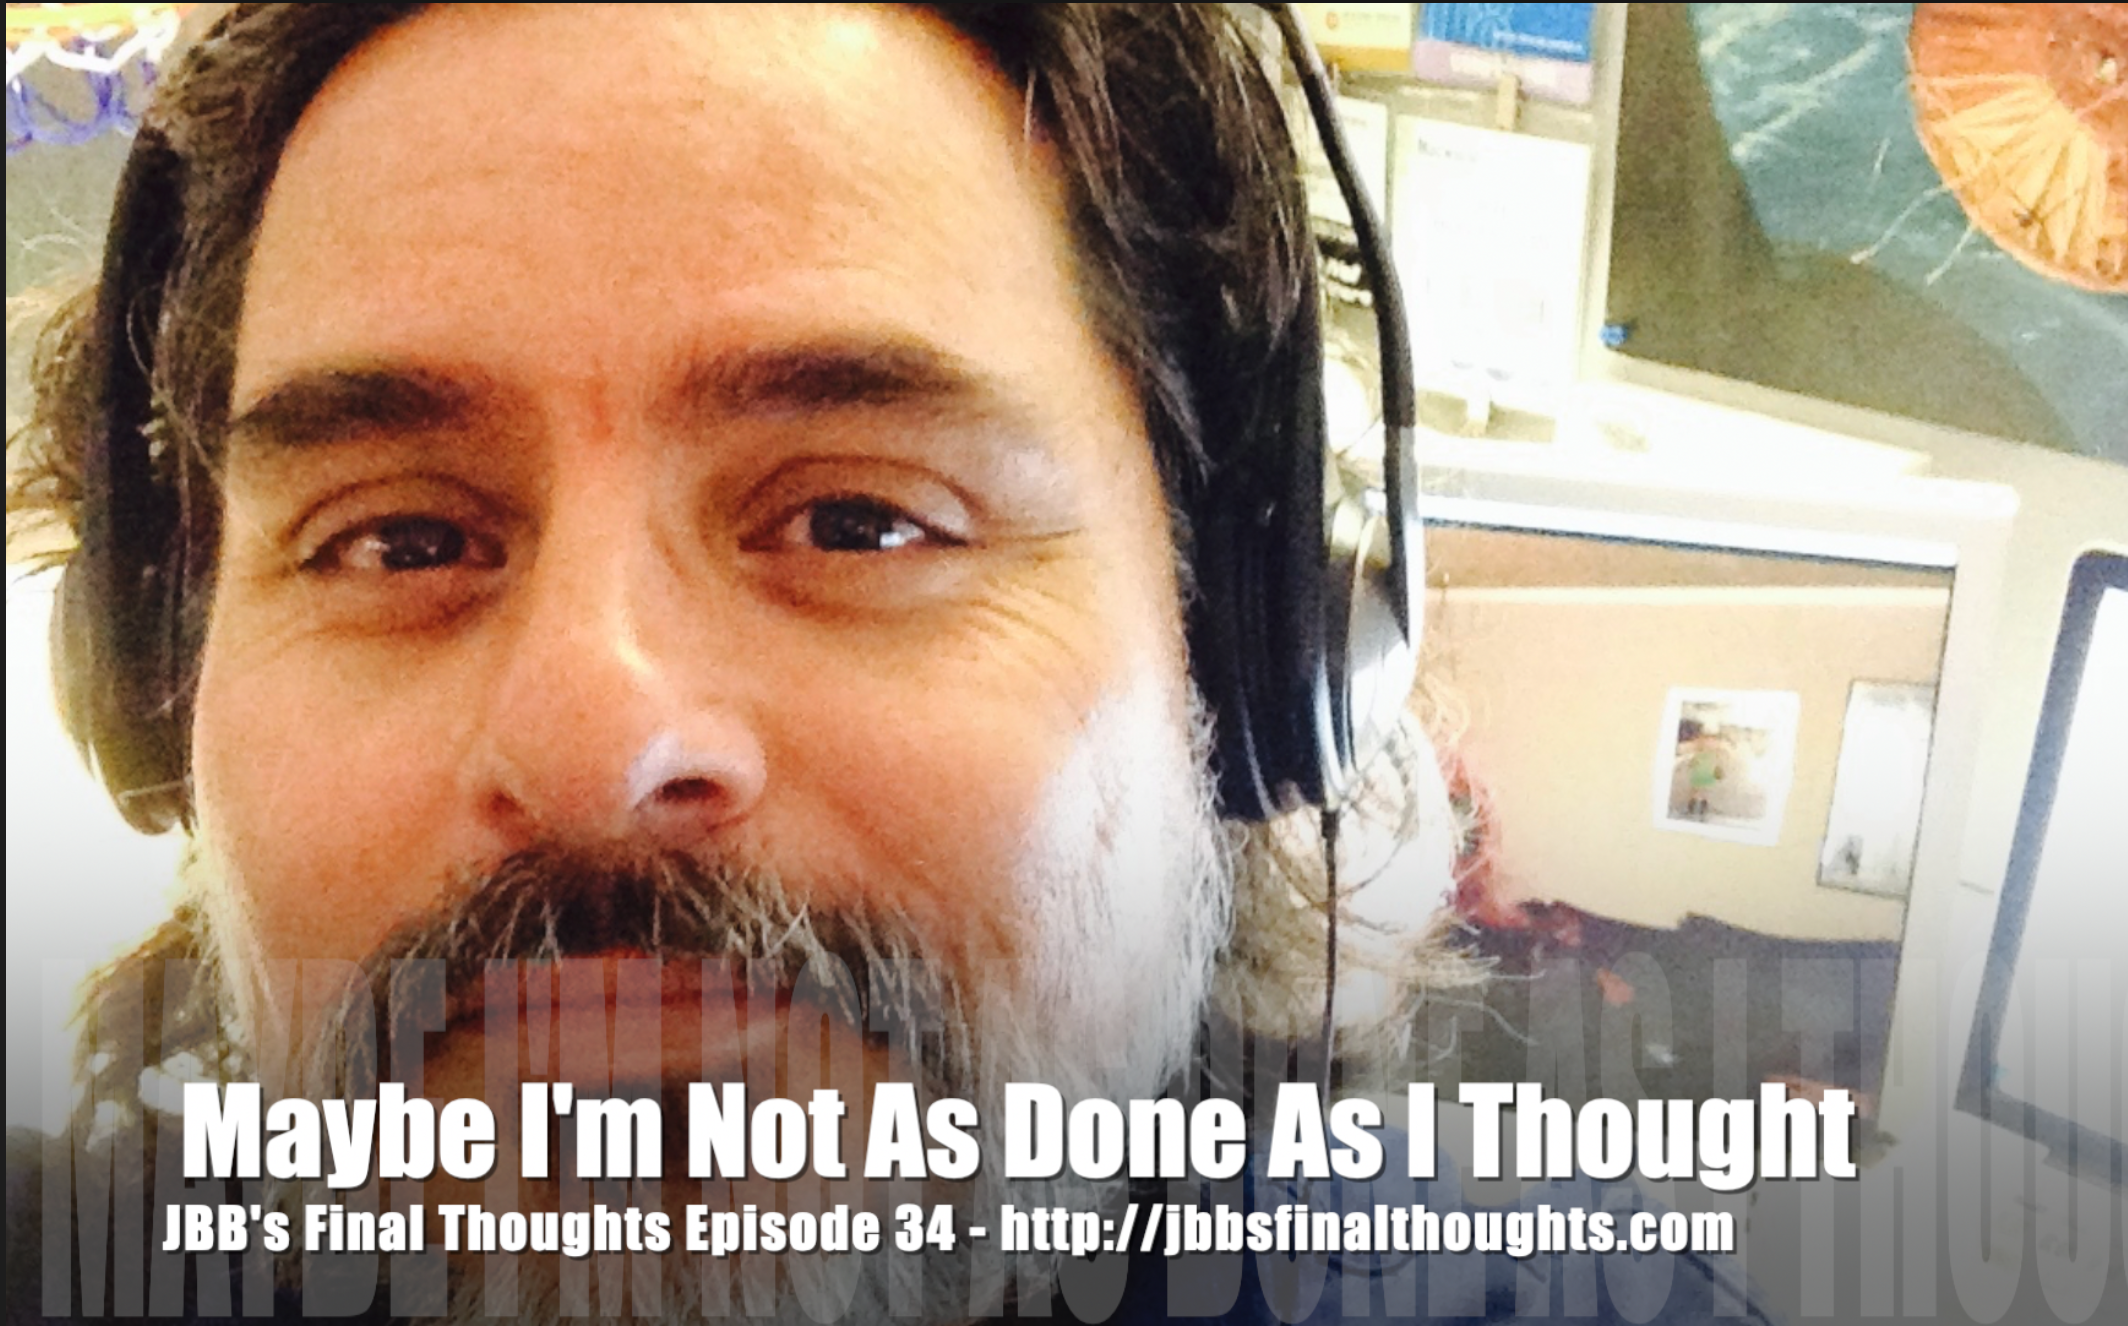 JBB's Final Thoughts Episode 34: Maybe I'm Not As Done As I Thought